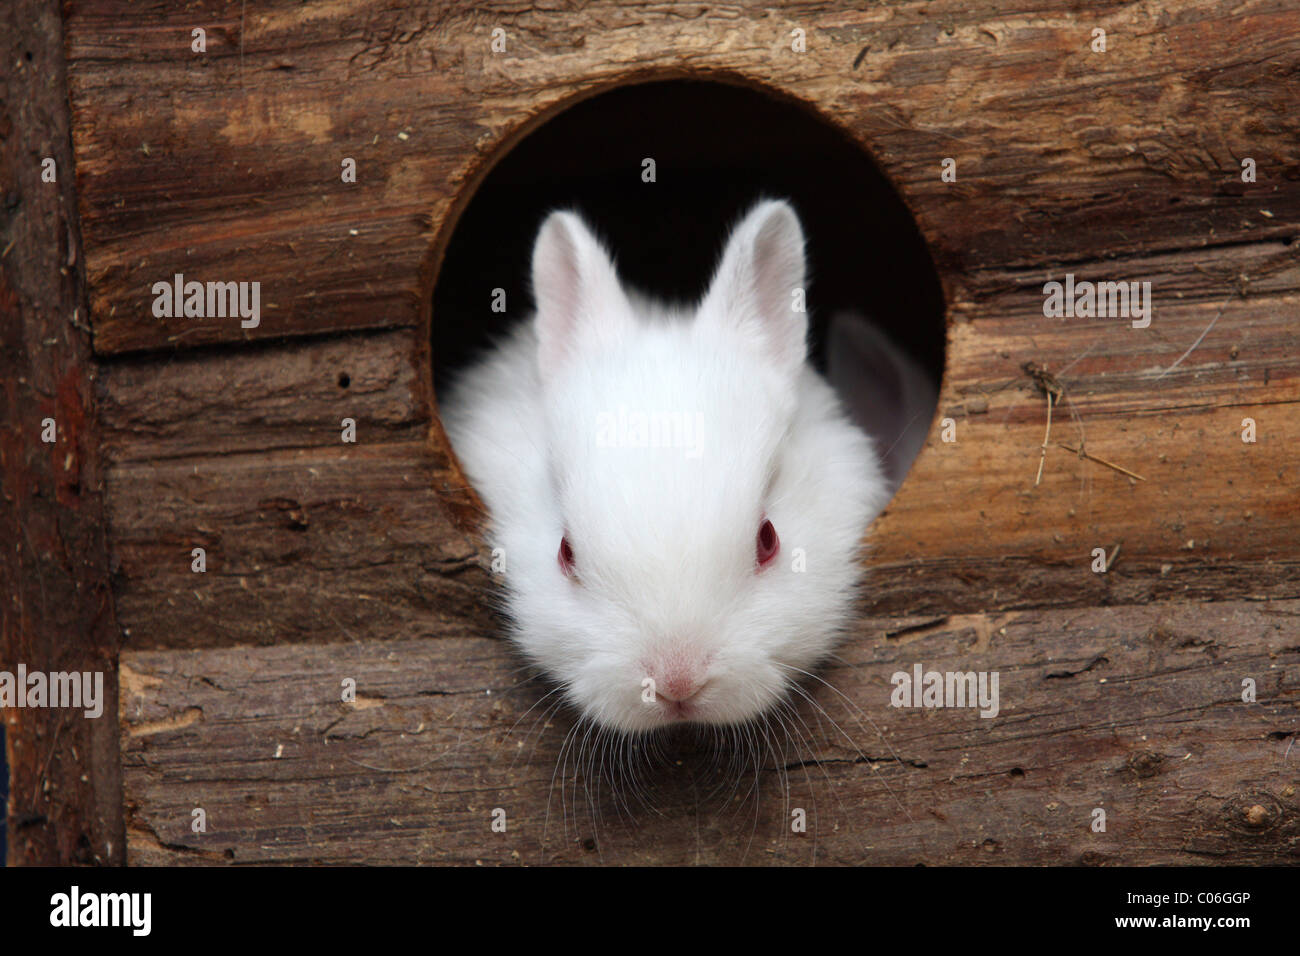 young rabbit - Stock Image